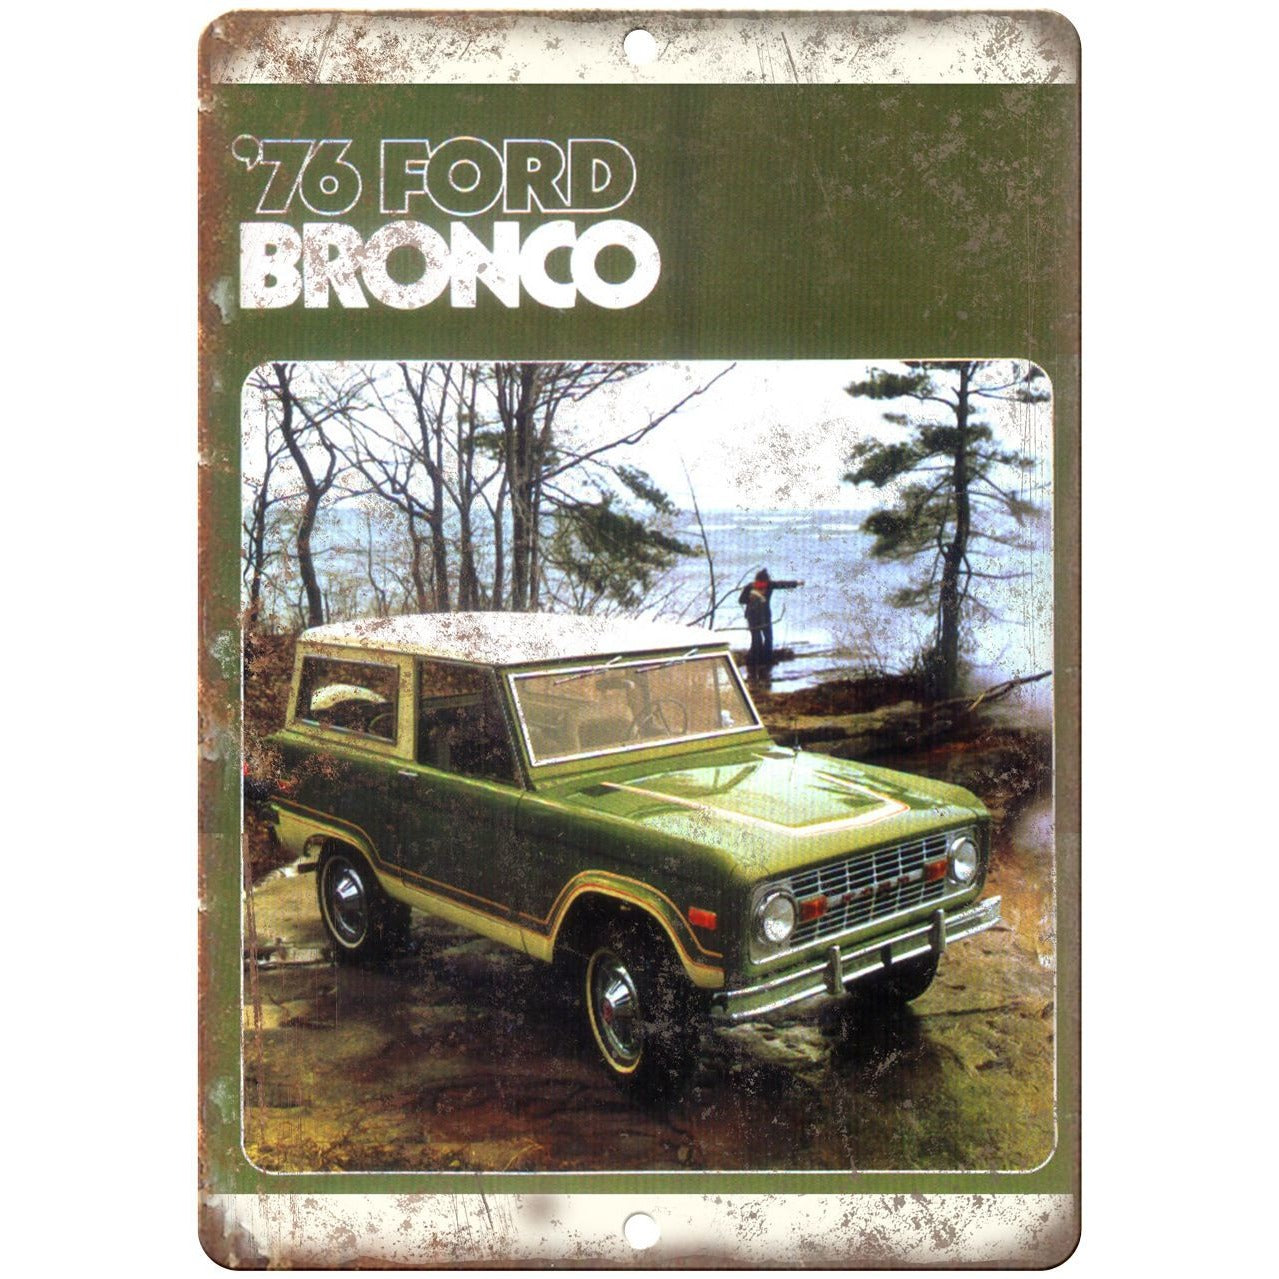 """1976 - Ford Bronco Vintage Ad - 10"""" x 7"""" Reproduction Metal Sign"""